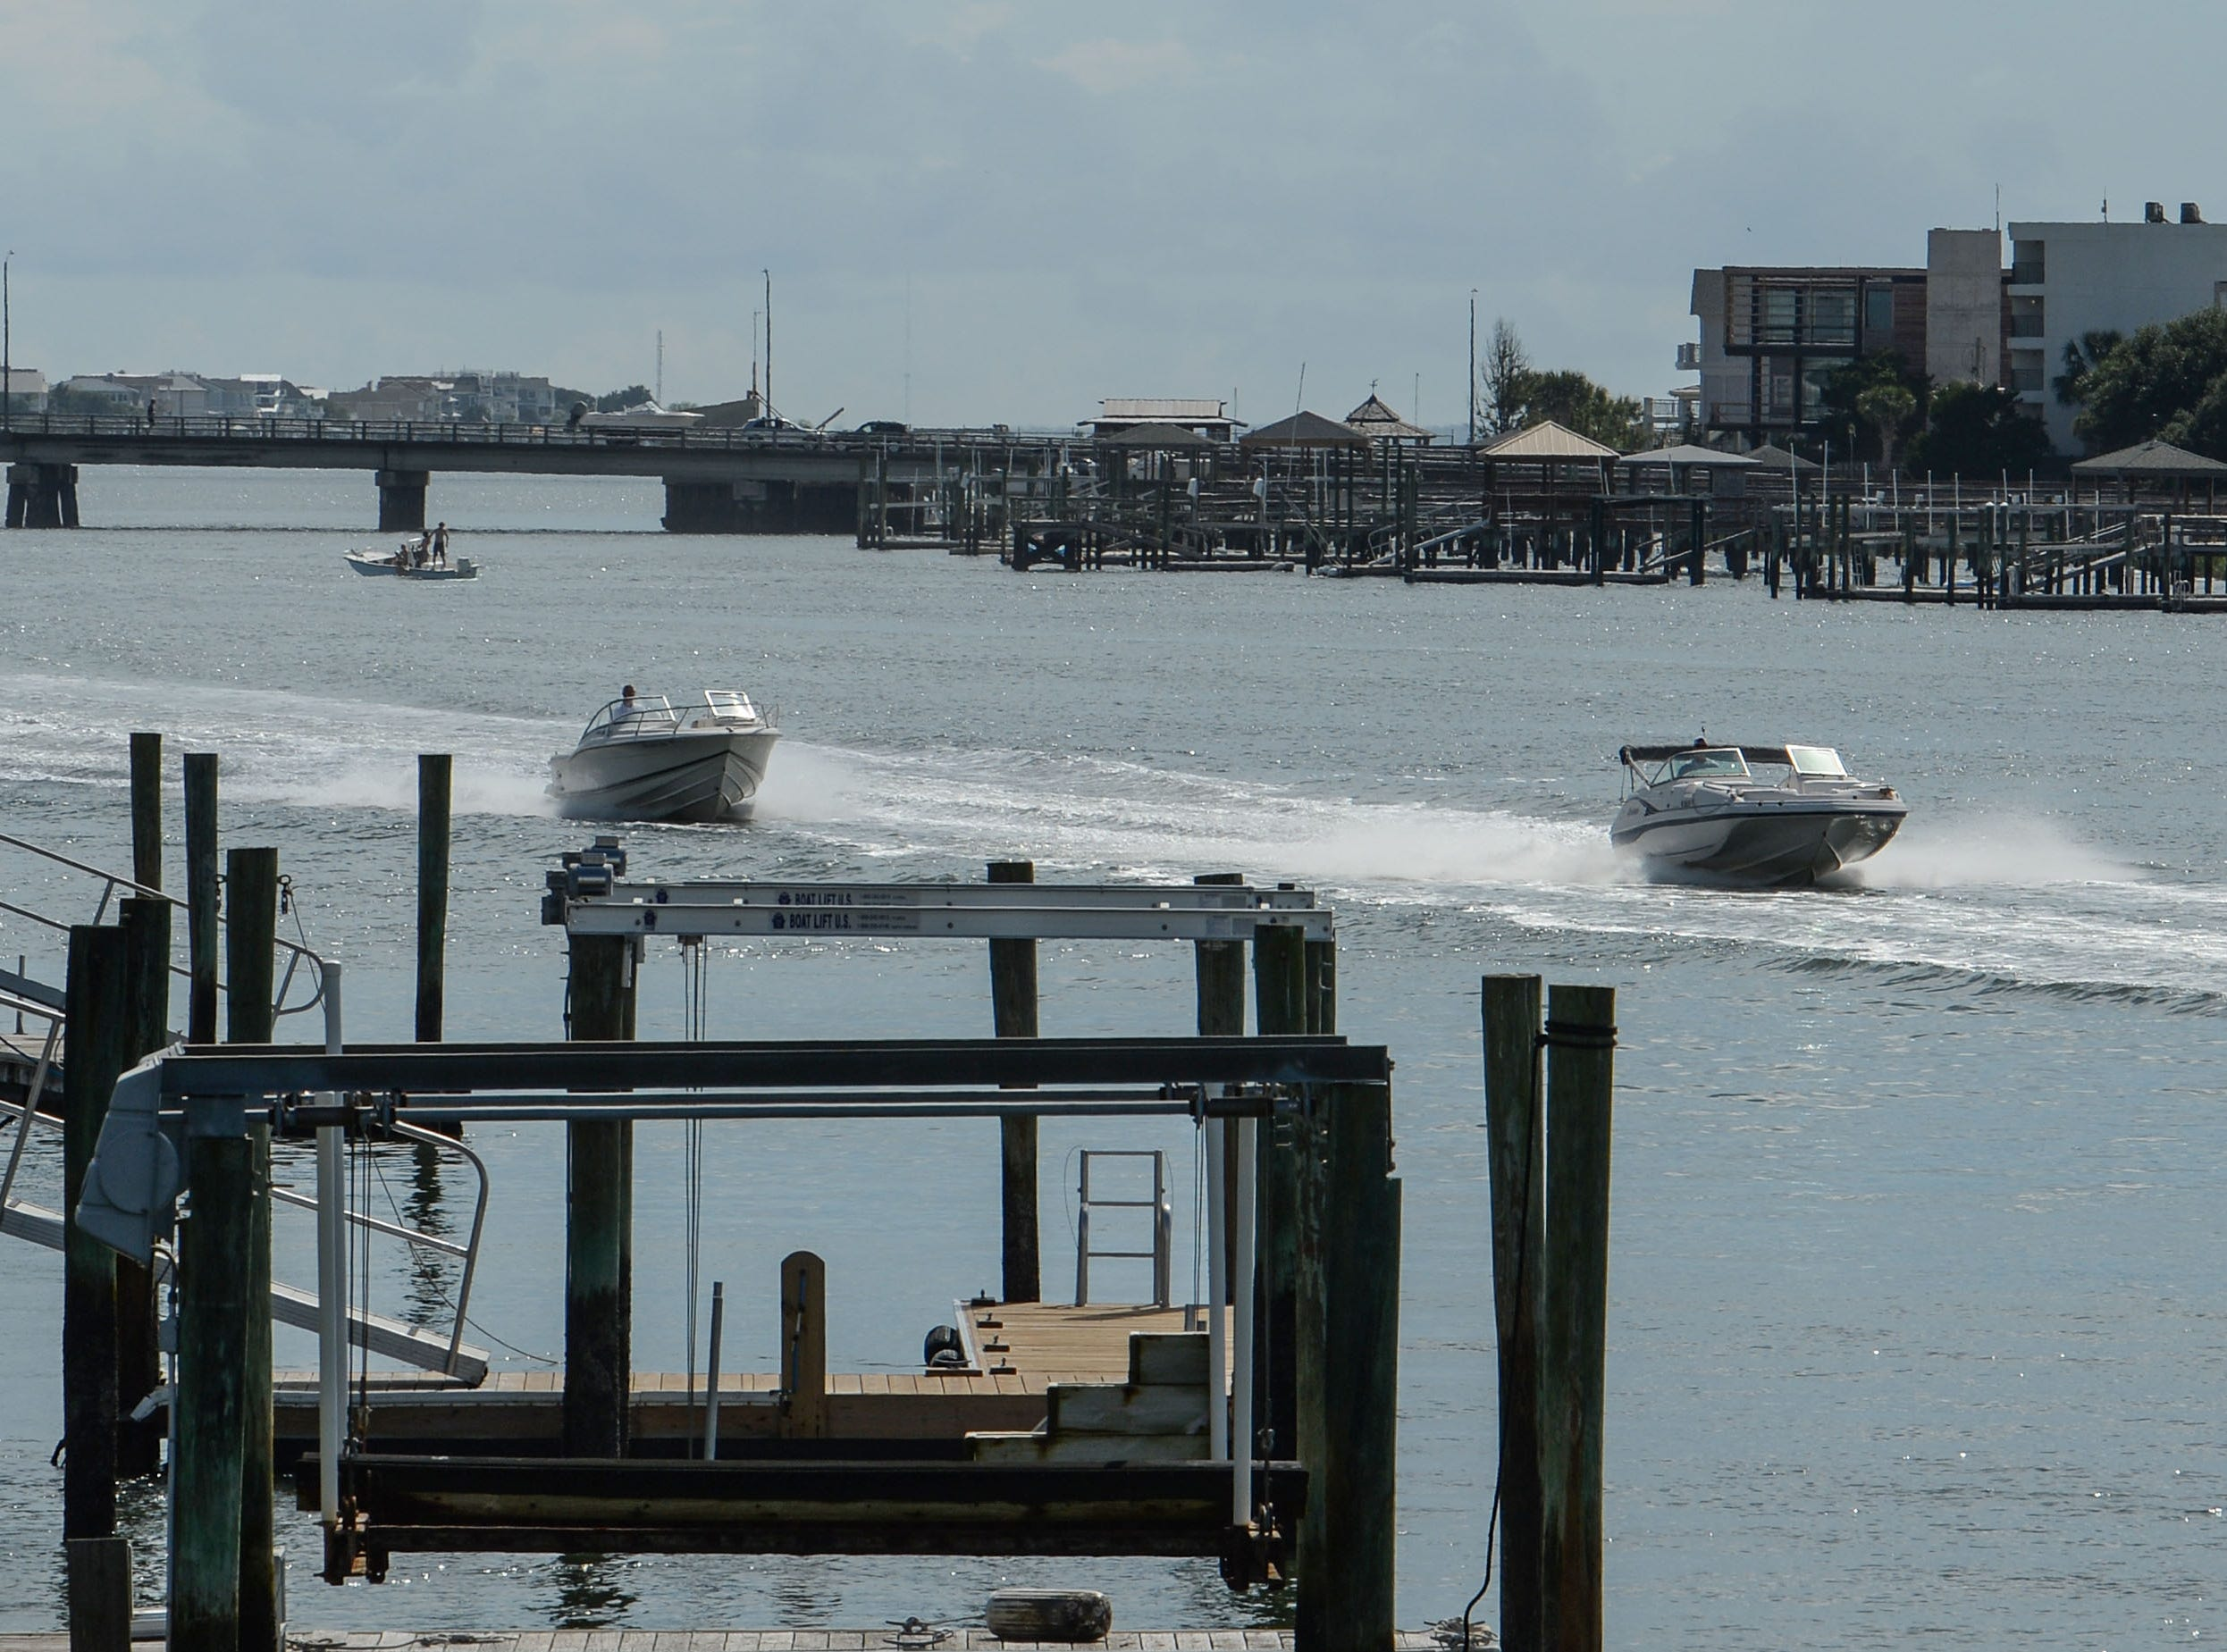 Boats ride on the waterway near Wrightsville Beach in Wilmington, North Carolina on Tuesday, September 11, 2018. Hurricane Florence is expected to arrive in Wilmington, North Carolina late Thursday night through Friday morning. (Ken Ruinard / Greenville News / Gannett USA Today Network / 2018 )